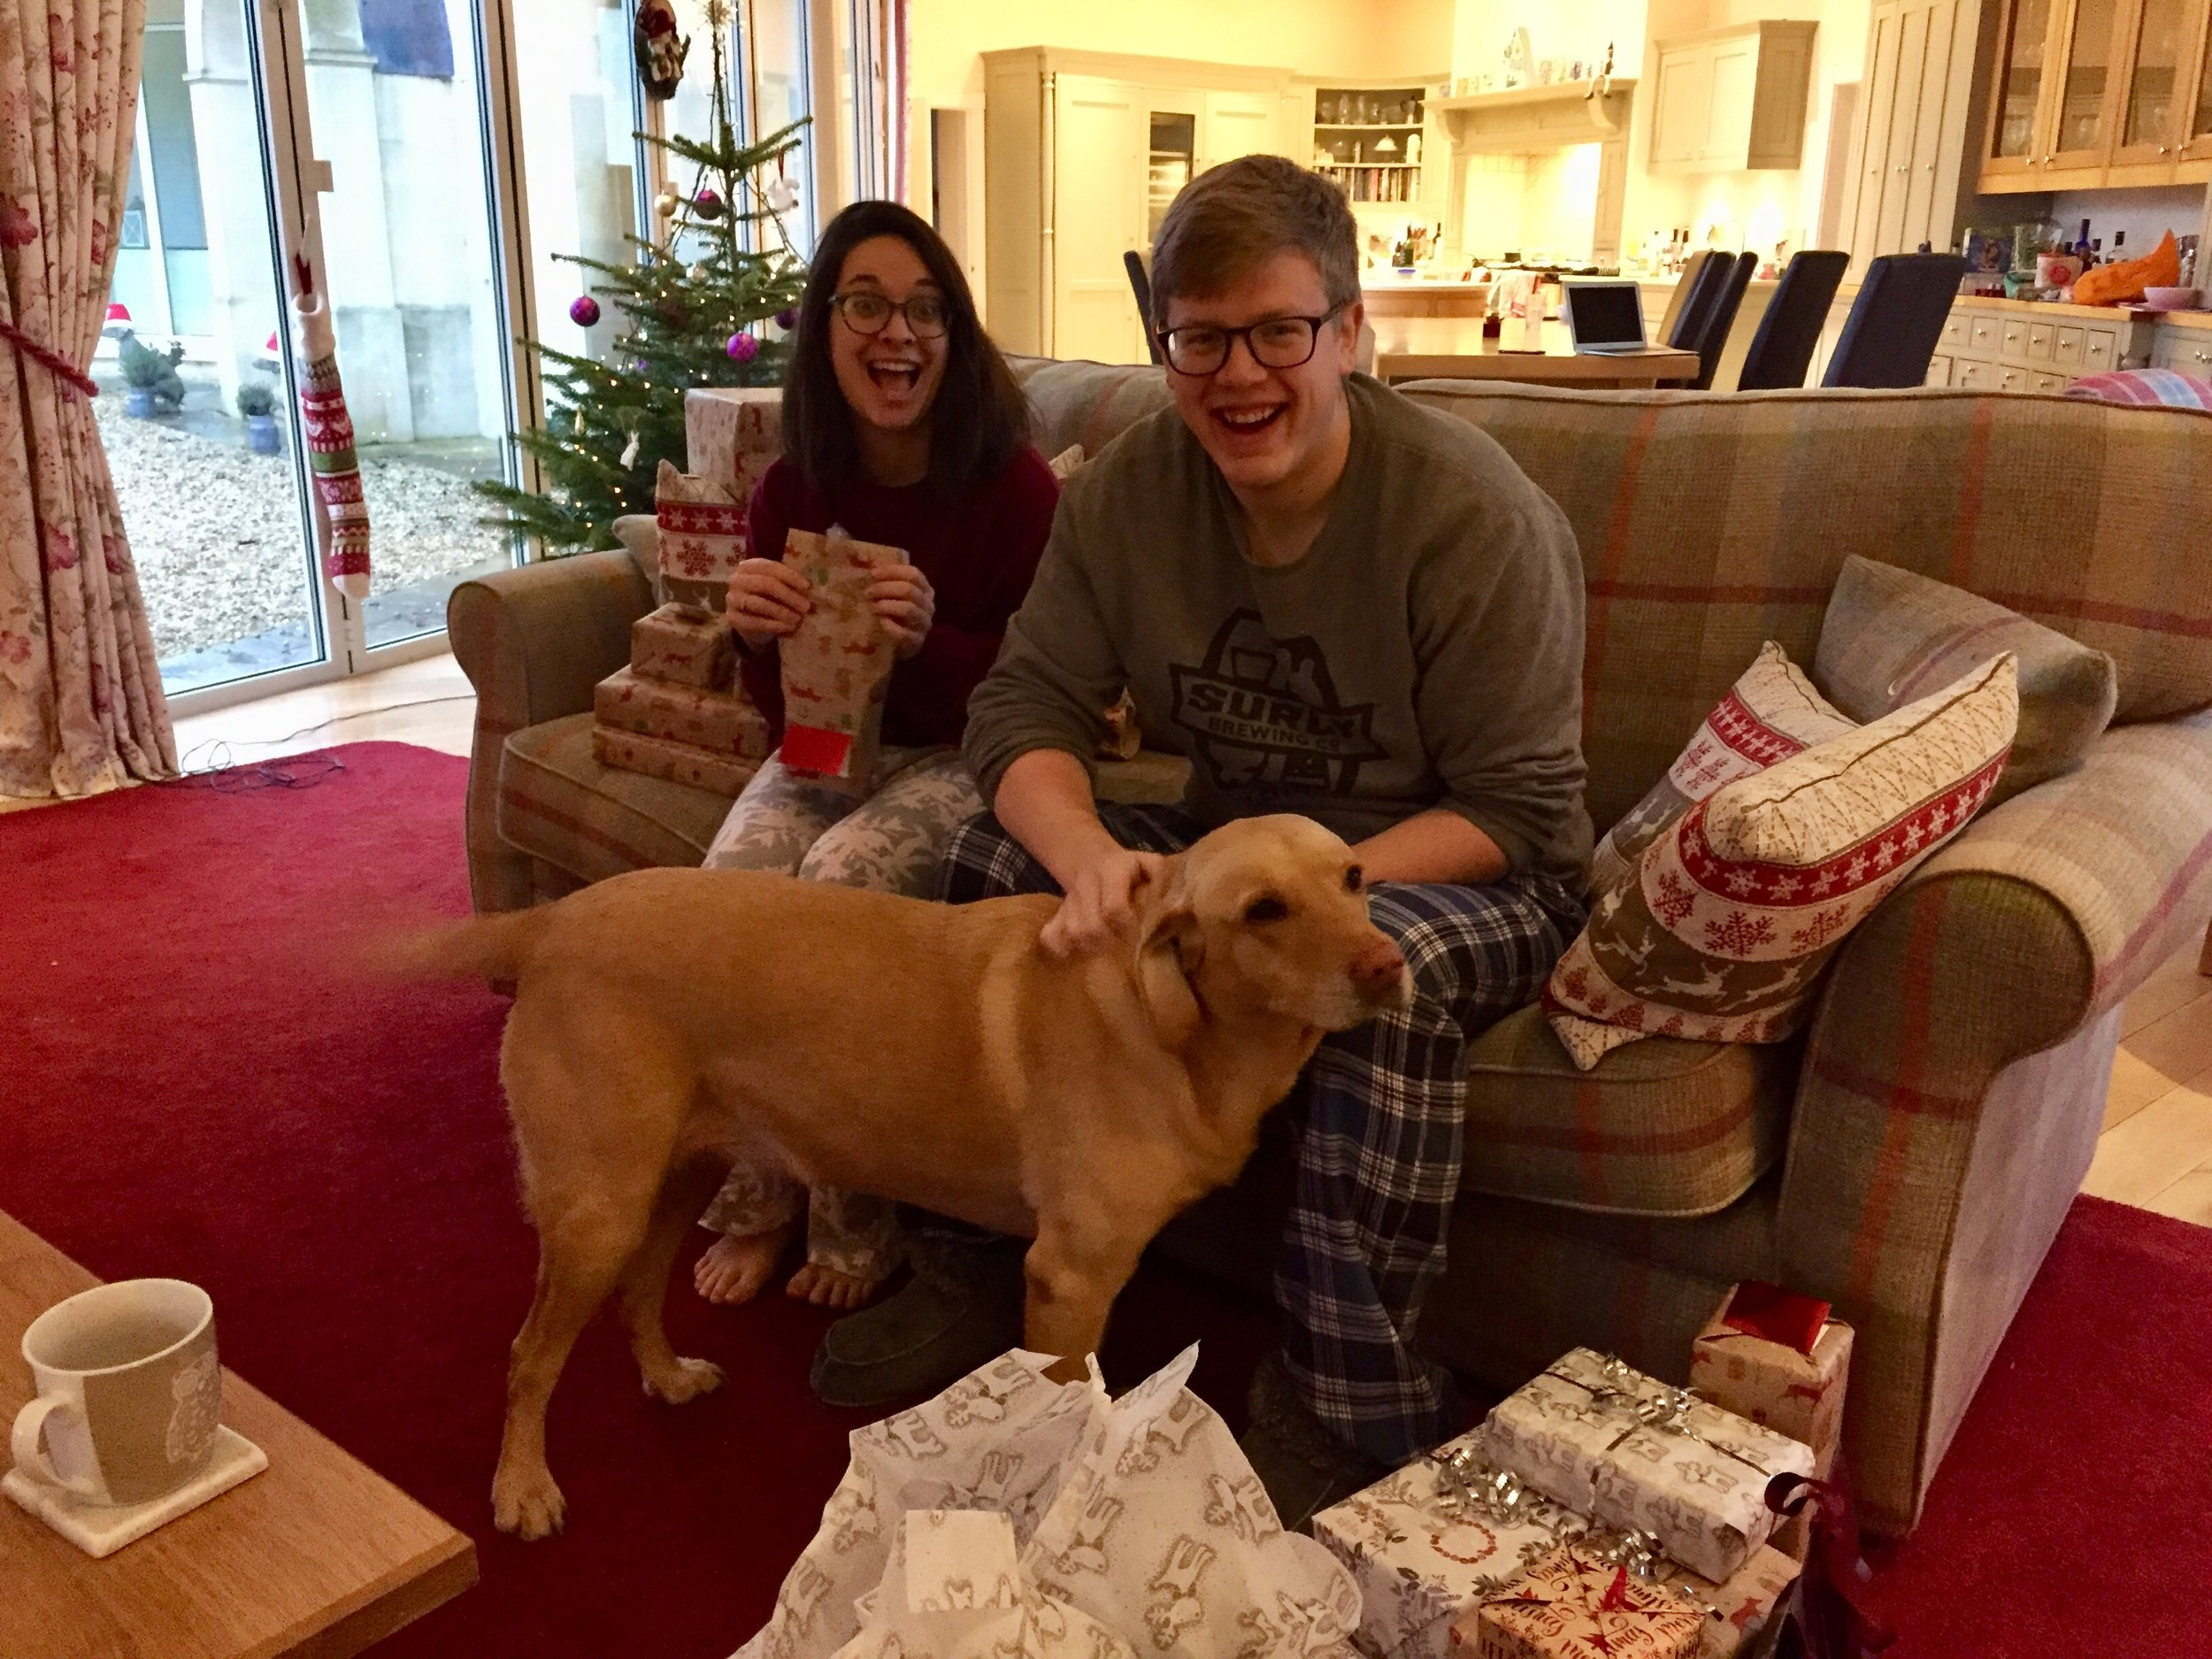 Brook is helping open presents